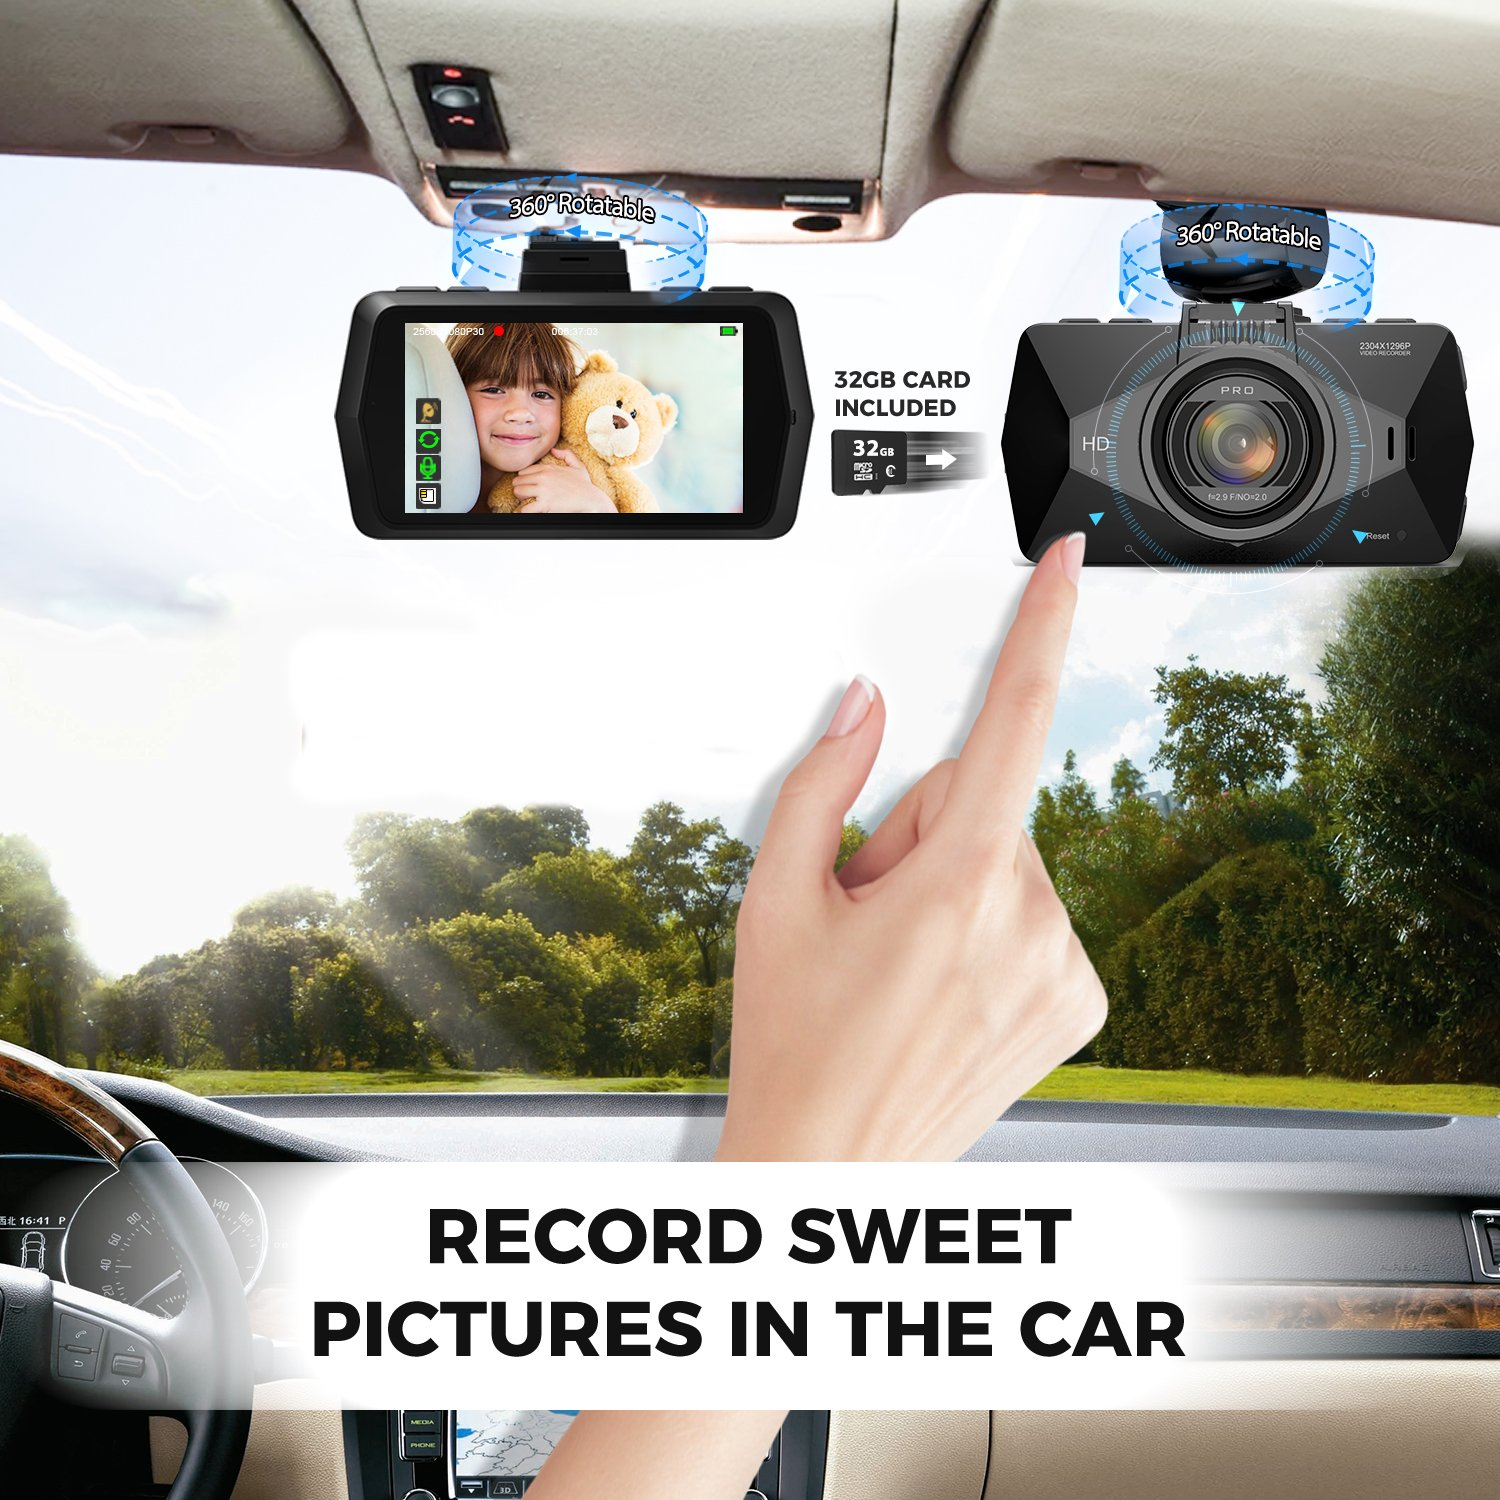 Dash Cam, SEYDI F1 Car Camera : 2.7'' Screen 2K Full HD 1296p Dashboard Camera, 170° Wide Angle, DVR, Parking Mode, WDR Night Vision, GPS, G-Sensor, 32G card, CPL Filter, Suction Cup Mount